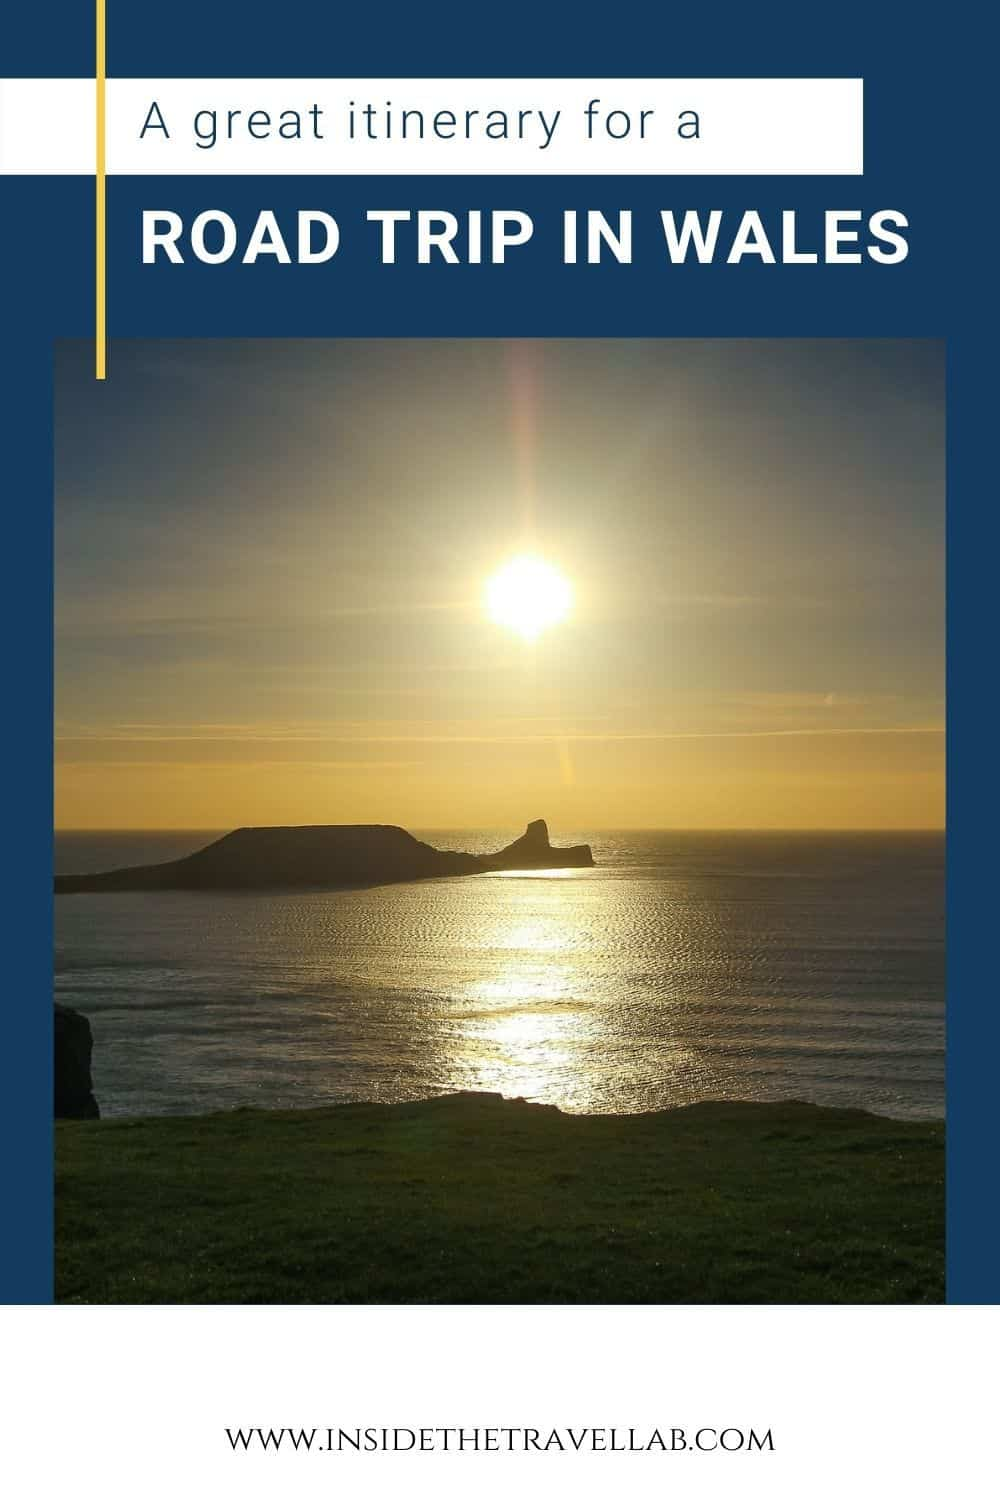 Wales Travel Guide - Wales Road Trip Itinerary